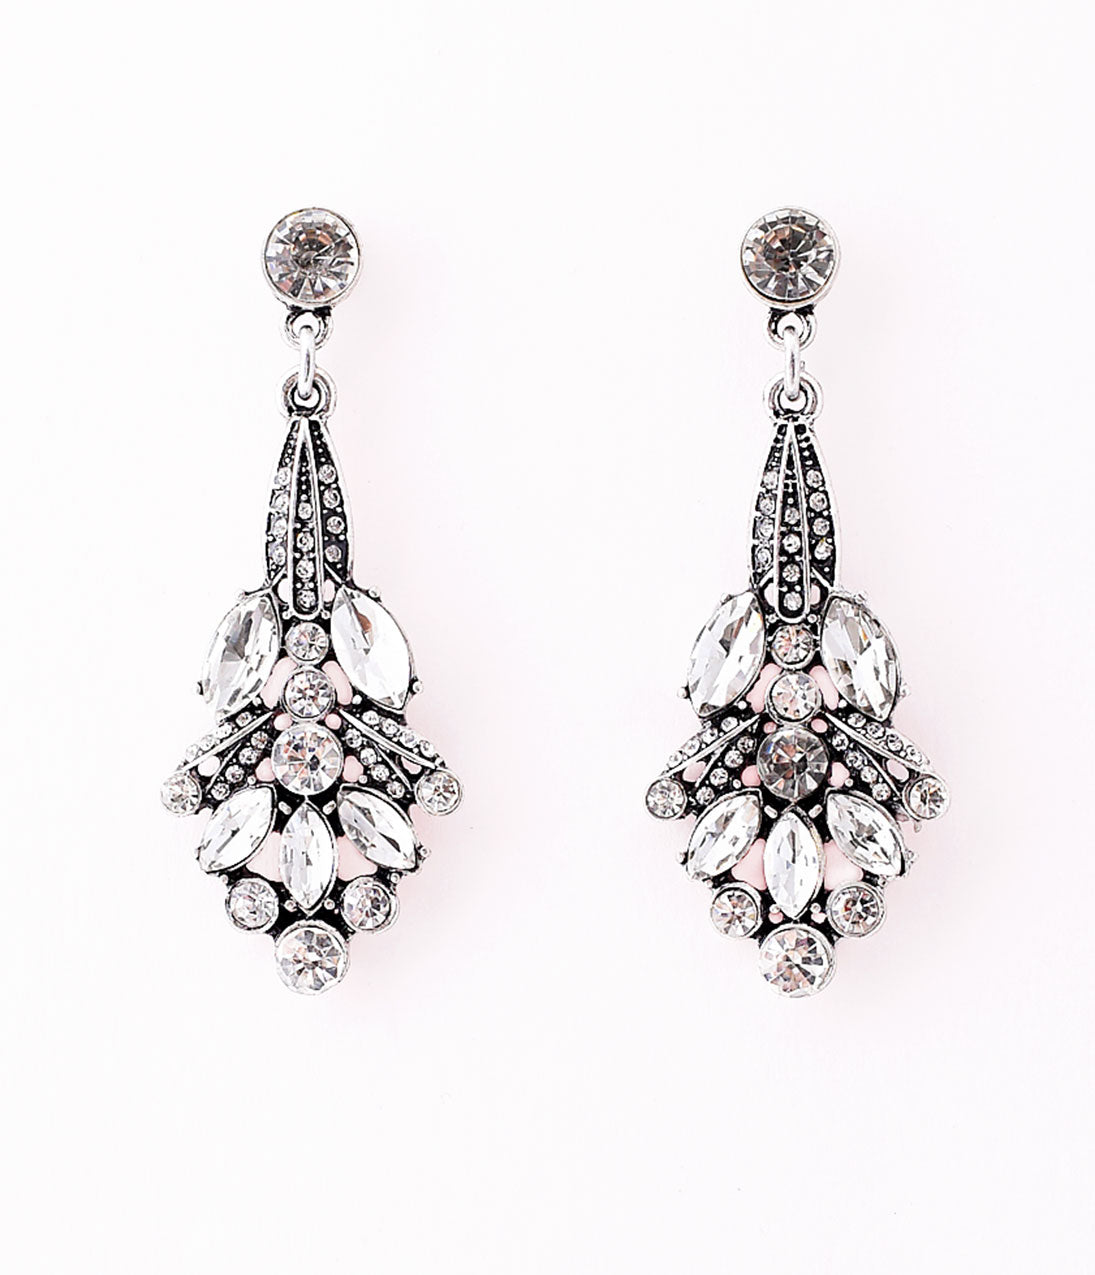 1930s Jewelry | Art Deco Style Jewelry 1920S Style Silver Rhinestone Nouveau Flower Drop Earrings $34.00 AT vintagedancer.com